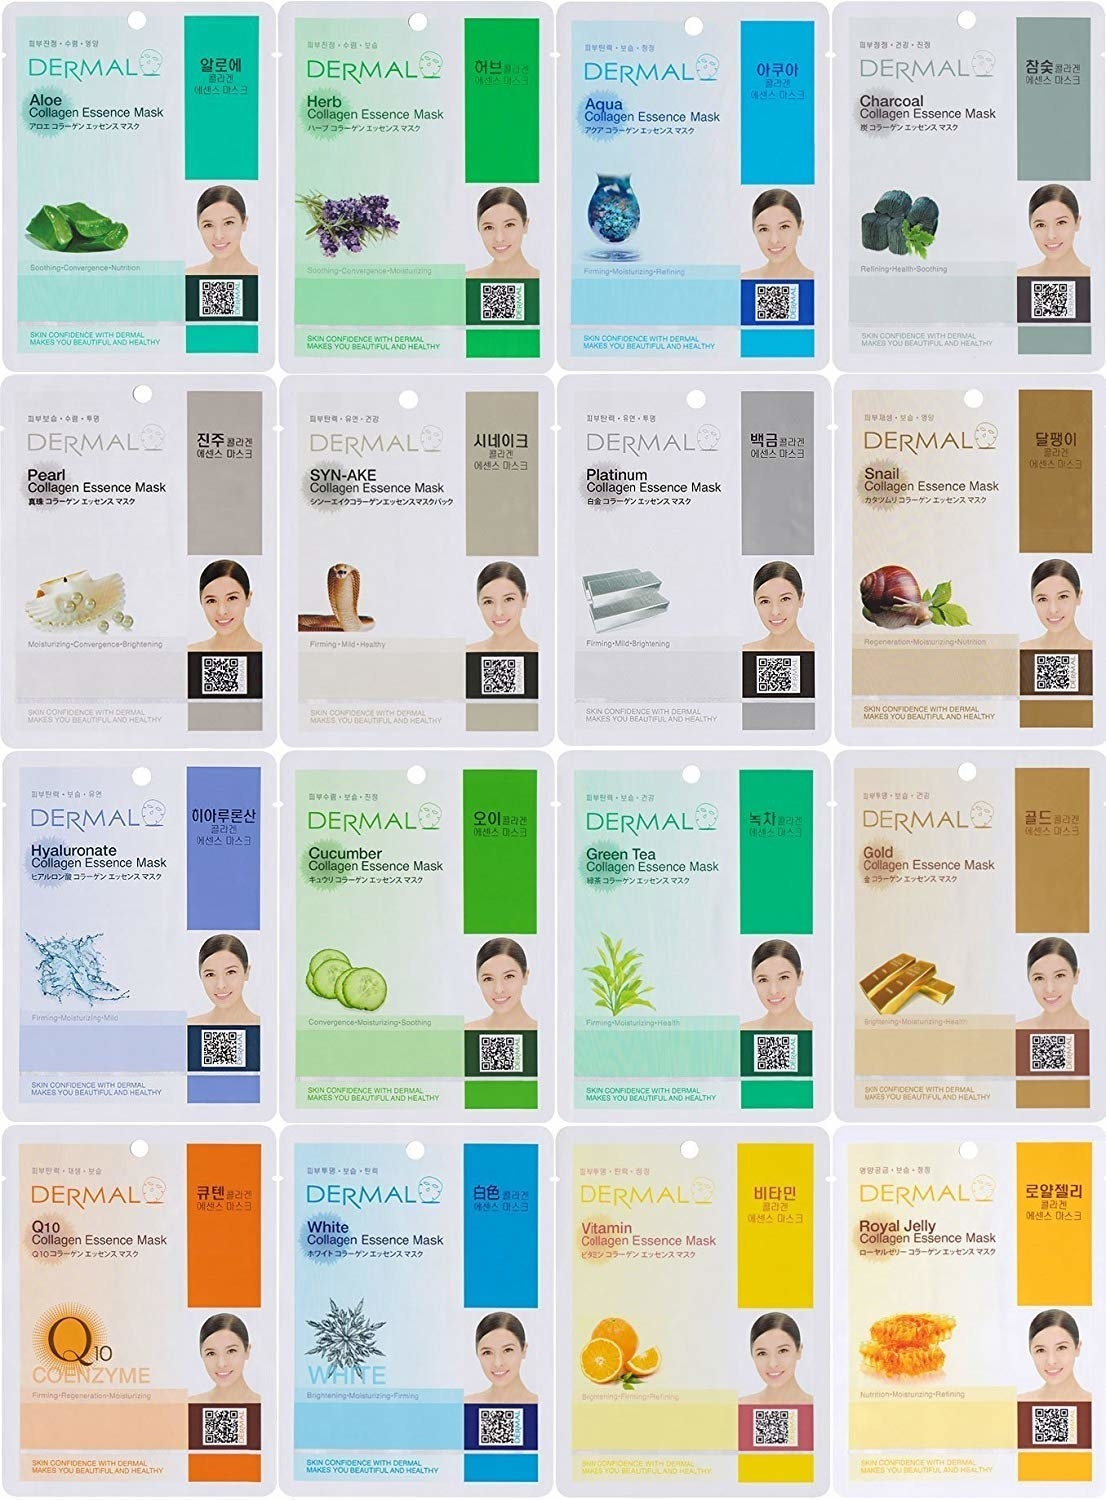 All of the varieties of the collagen face masks